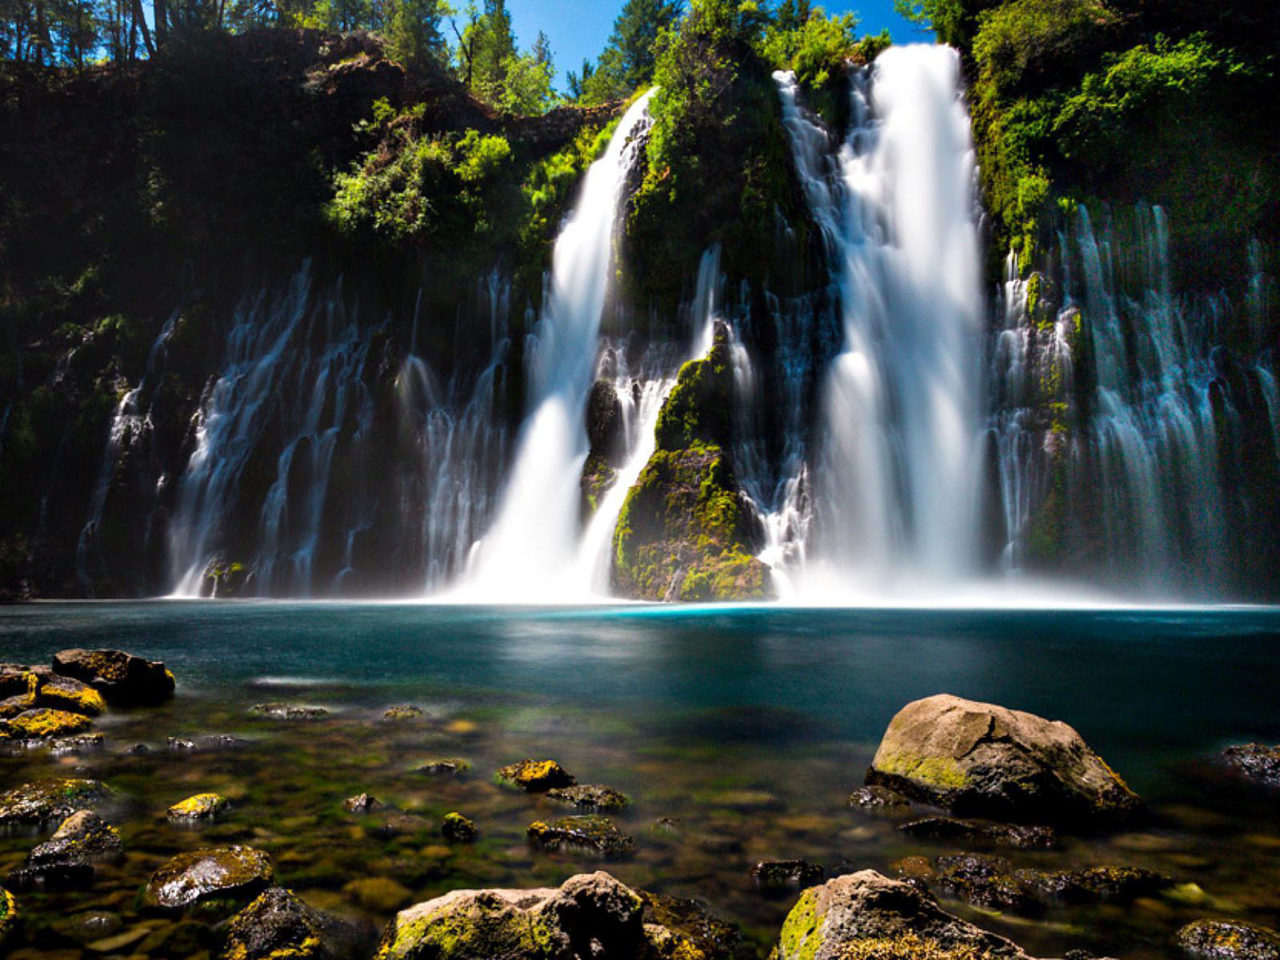 Niagara Falls Wallpaper 1366x768 Burney Falls Northern California Turquoise Blue Water Rock